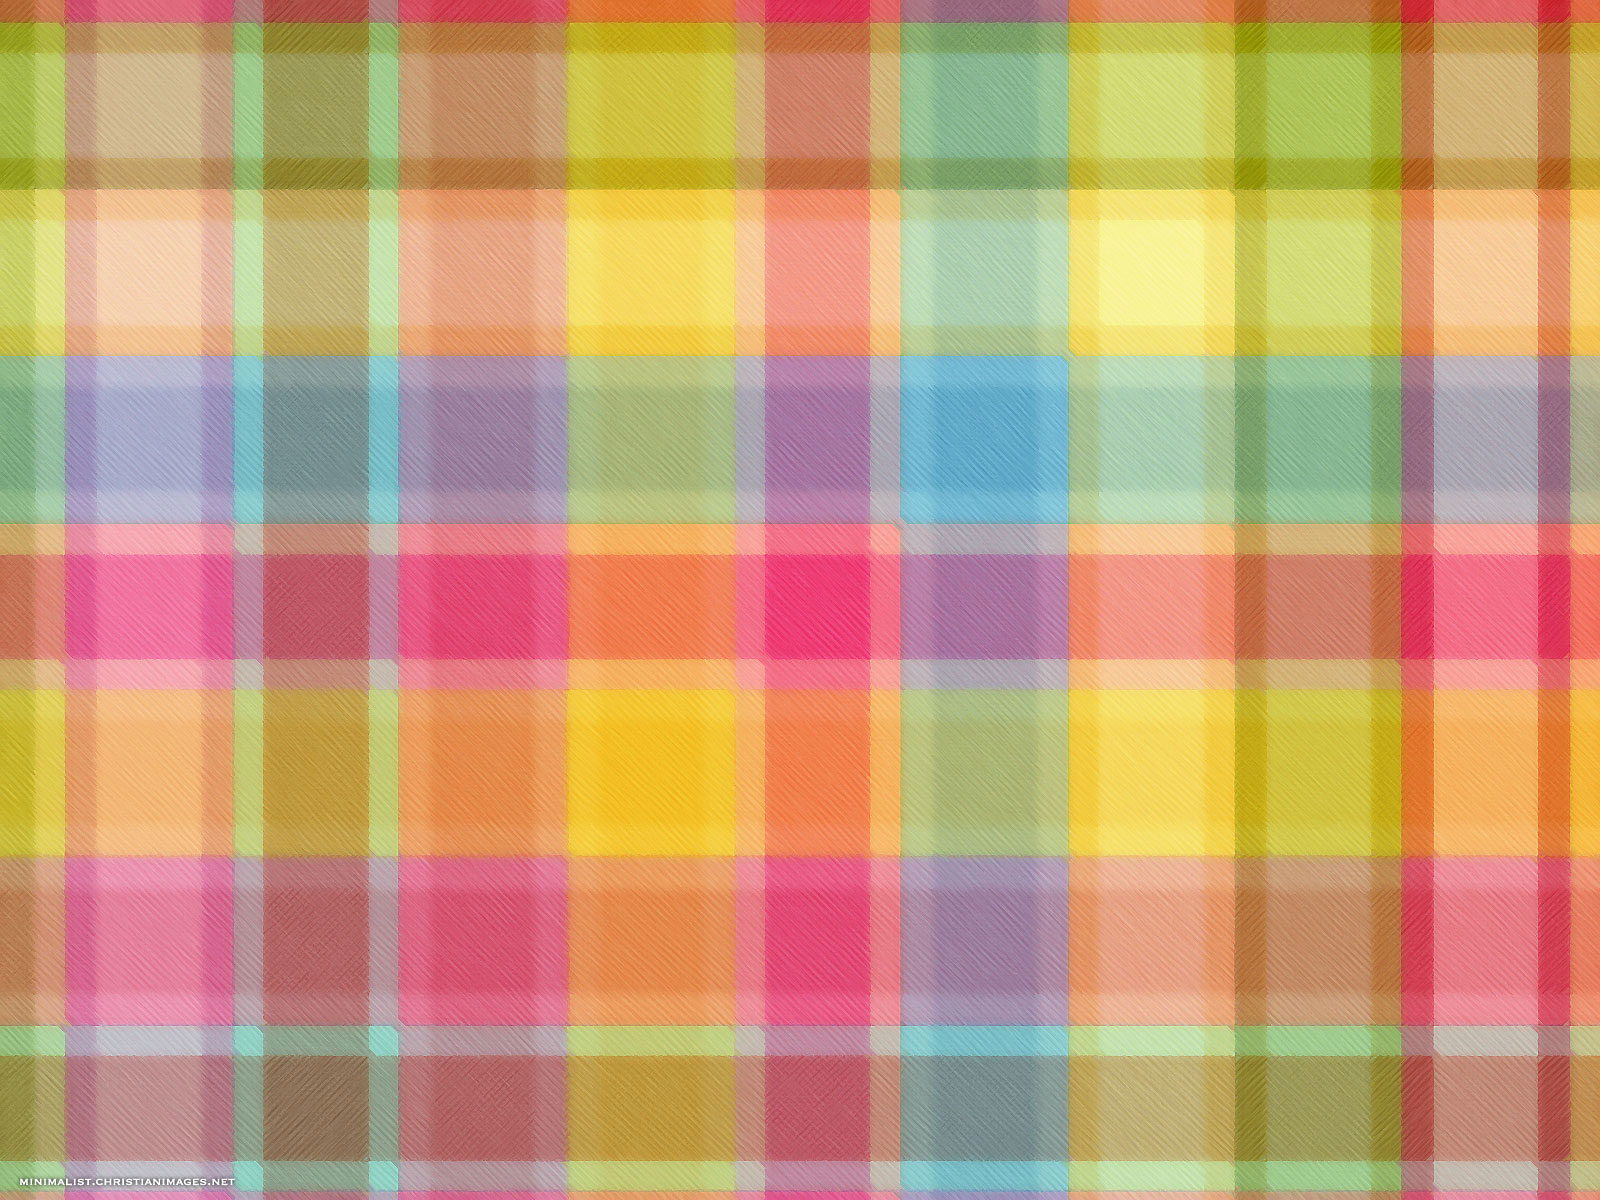 Plaid texture high quality background for powerpoint minimalist plaid texture high quality background for powerpoint toneelgroepblik Image collections